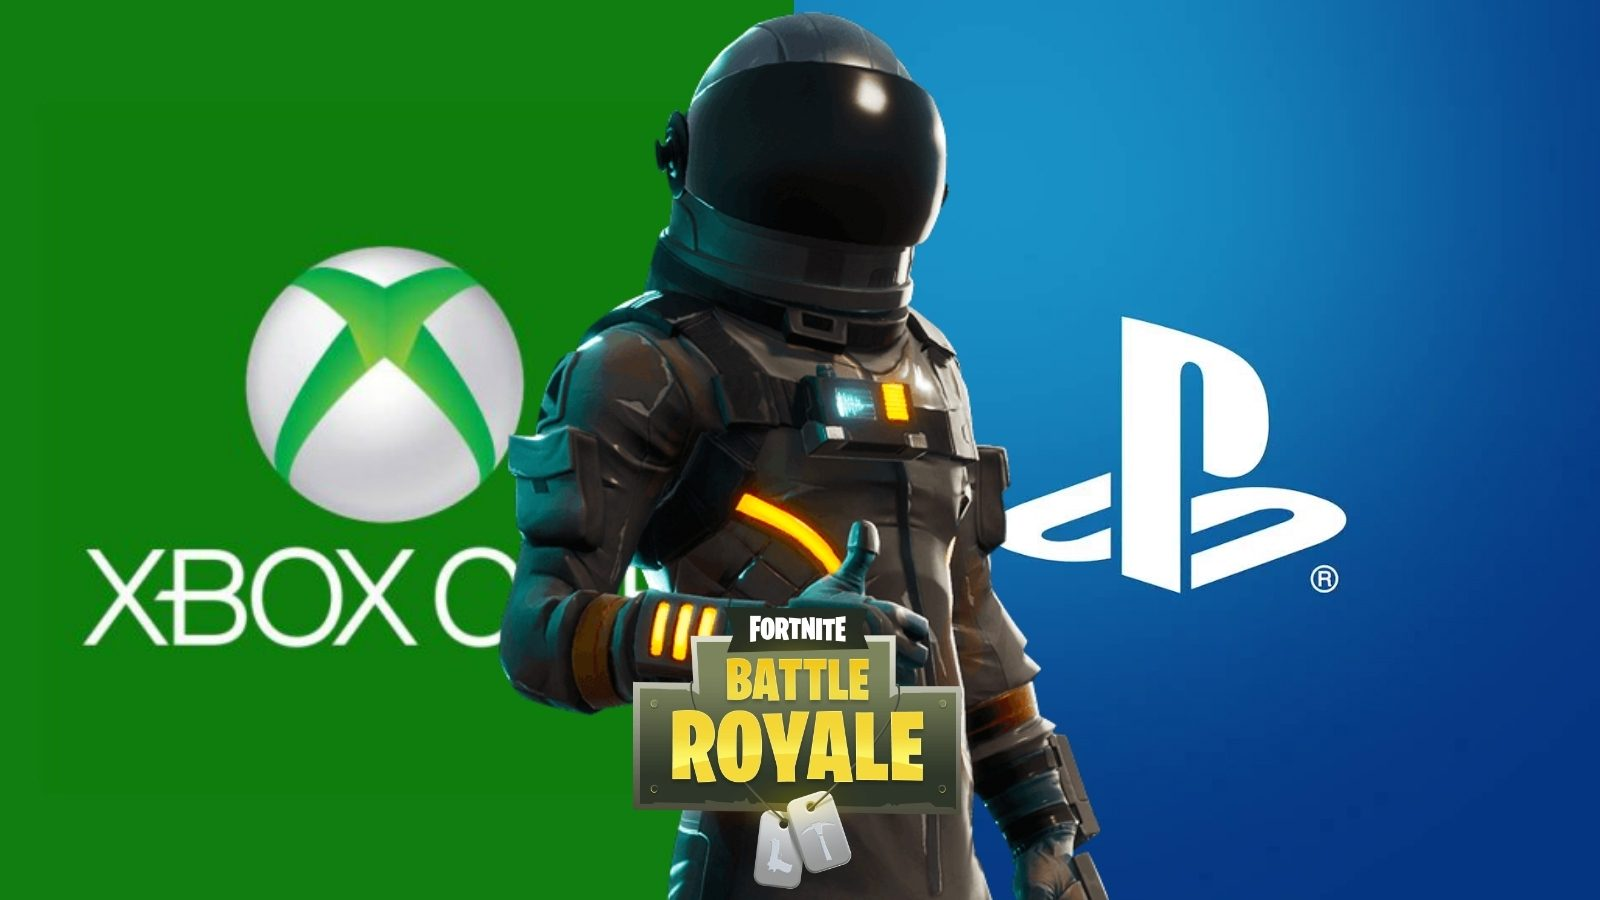 Epic reveals Sony's the only one who charges them for crossplay